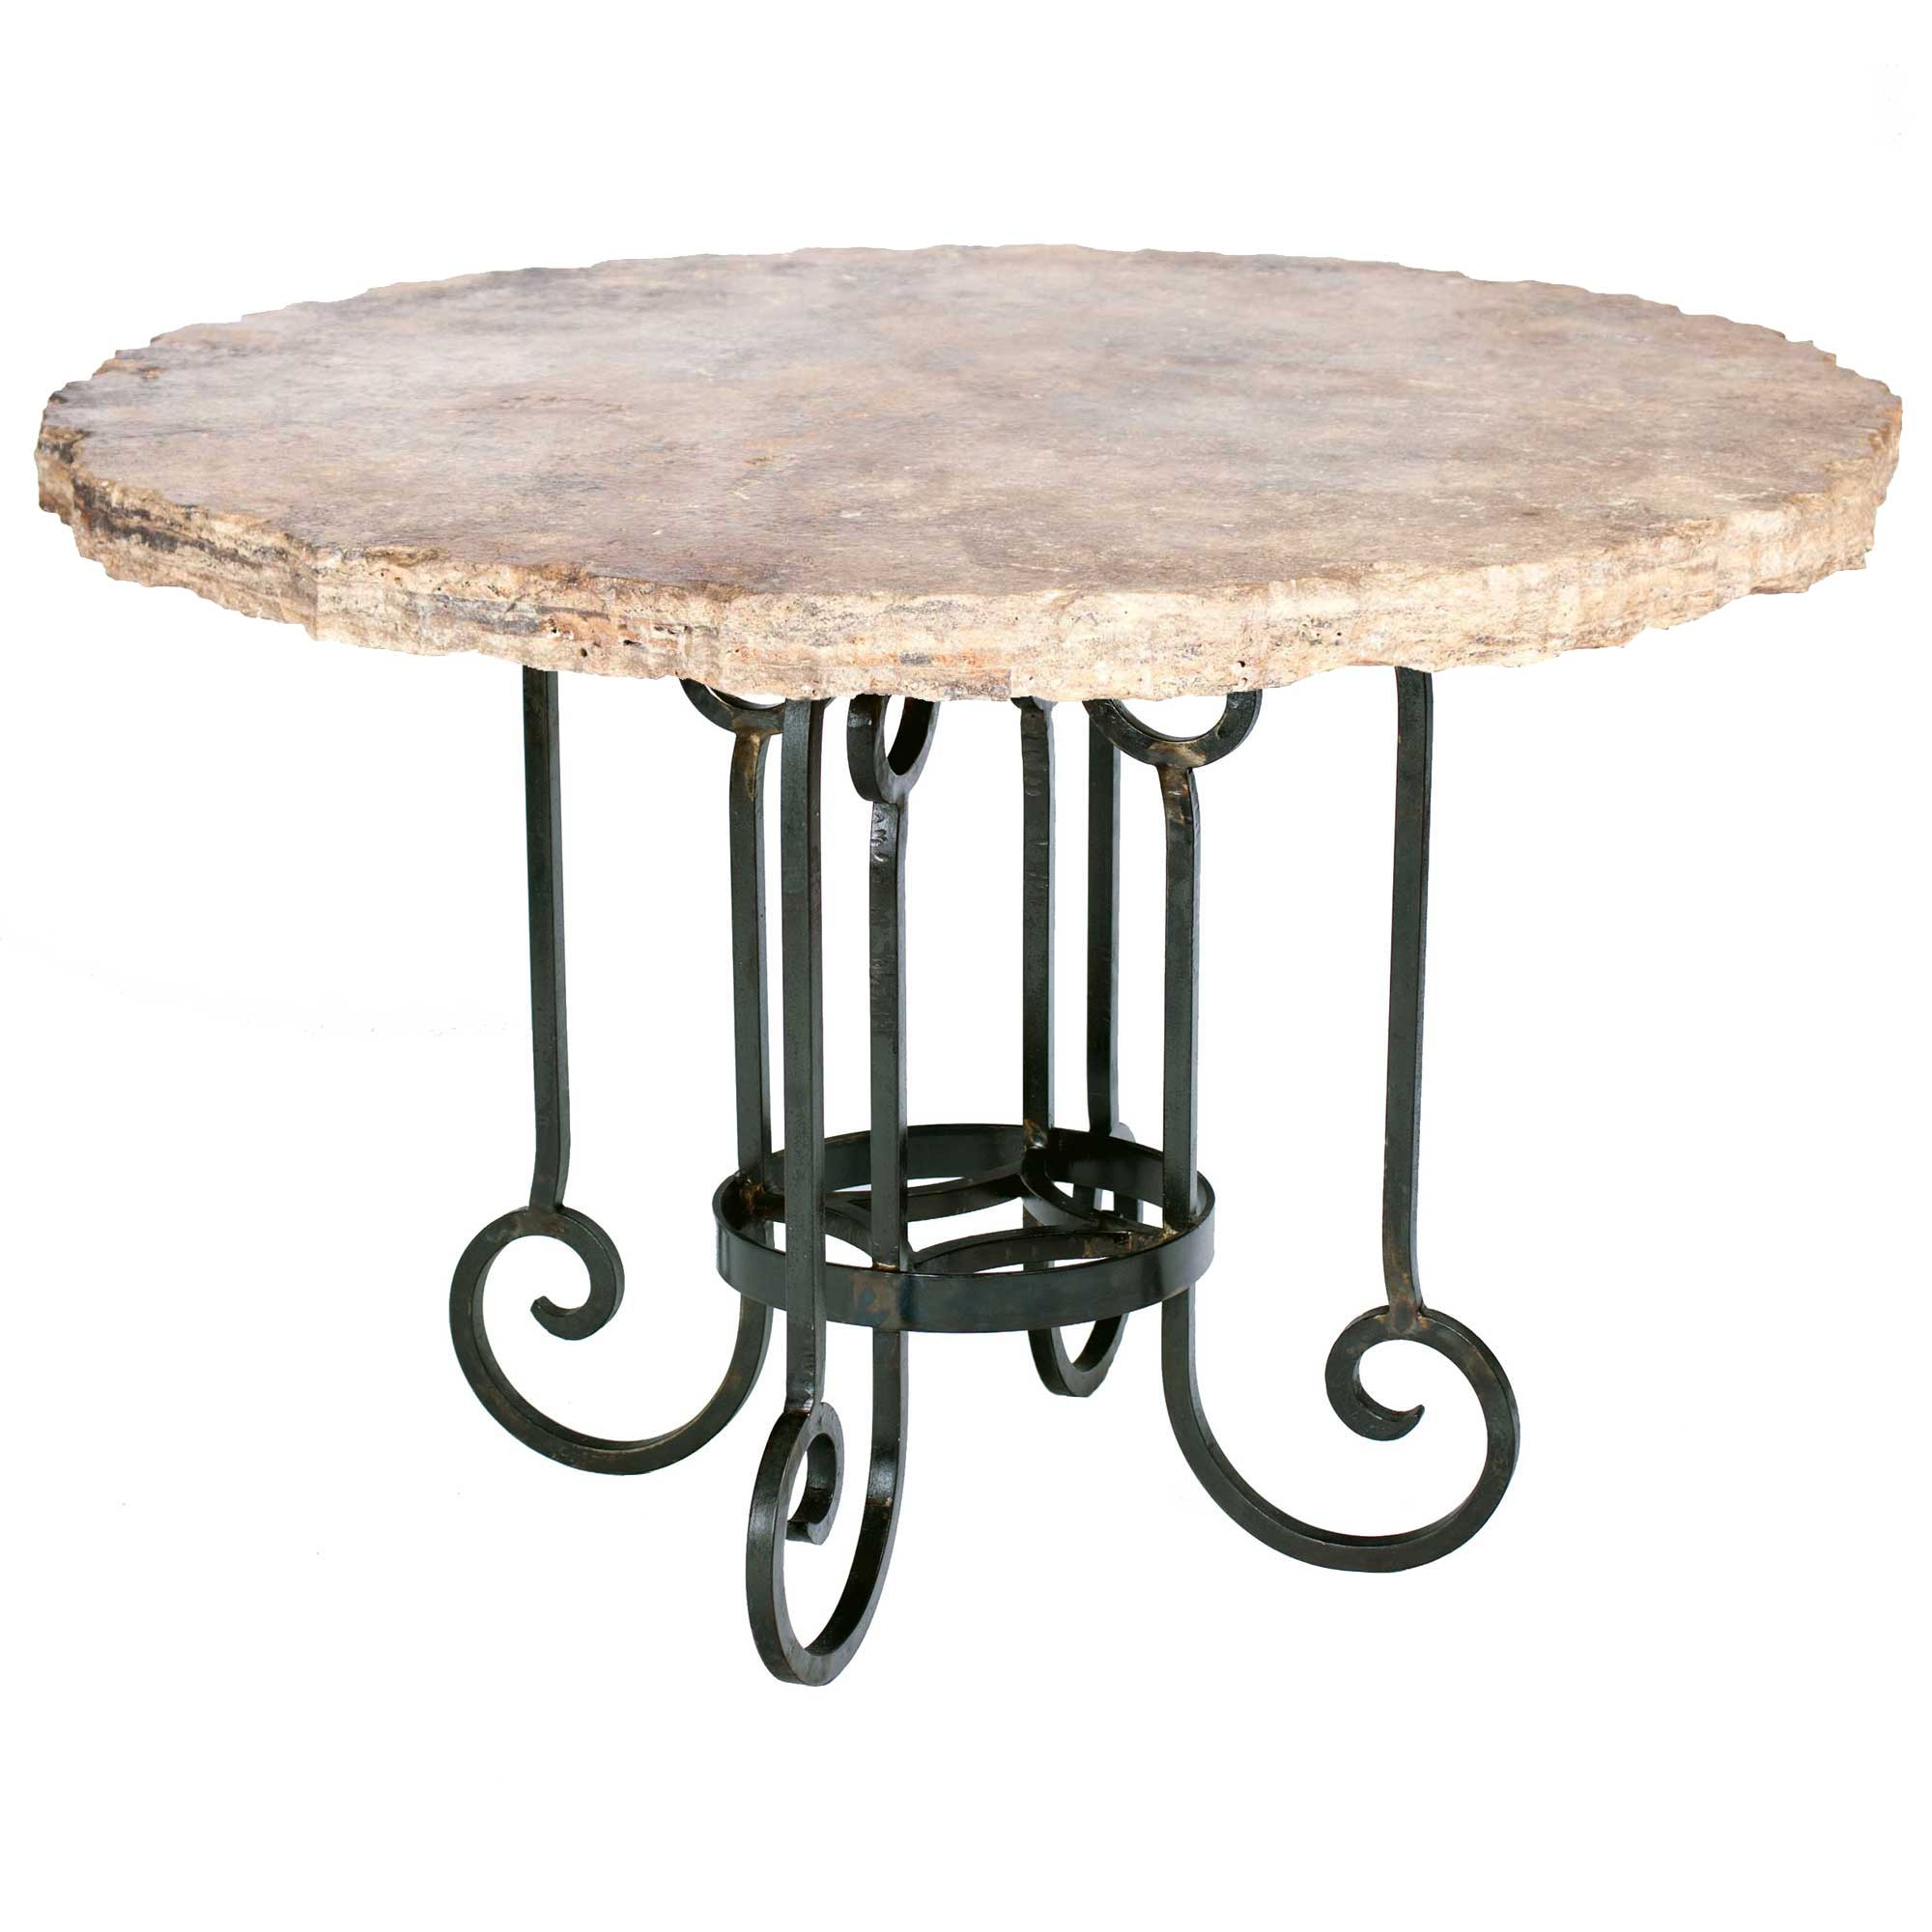 Stupendous Curled Leg Iron Dining Table With 60 Round Marble Top Gmtry Best Dining Table And Chair Ideas Images Gmtryco